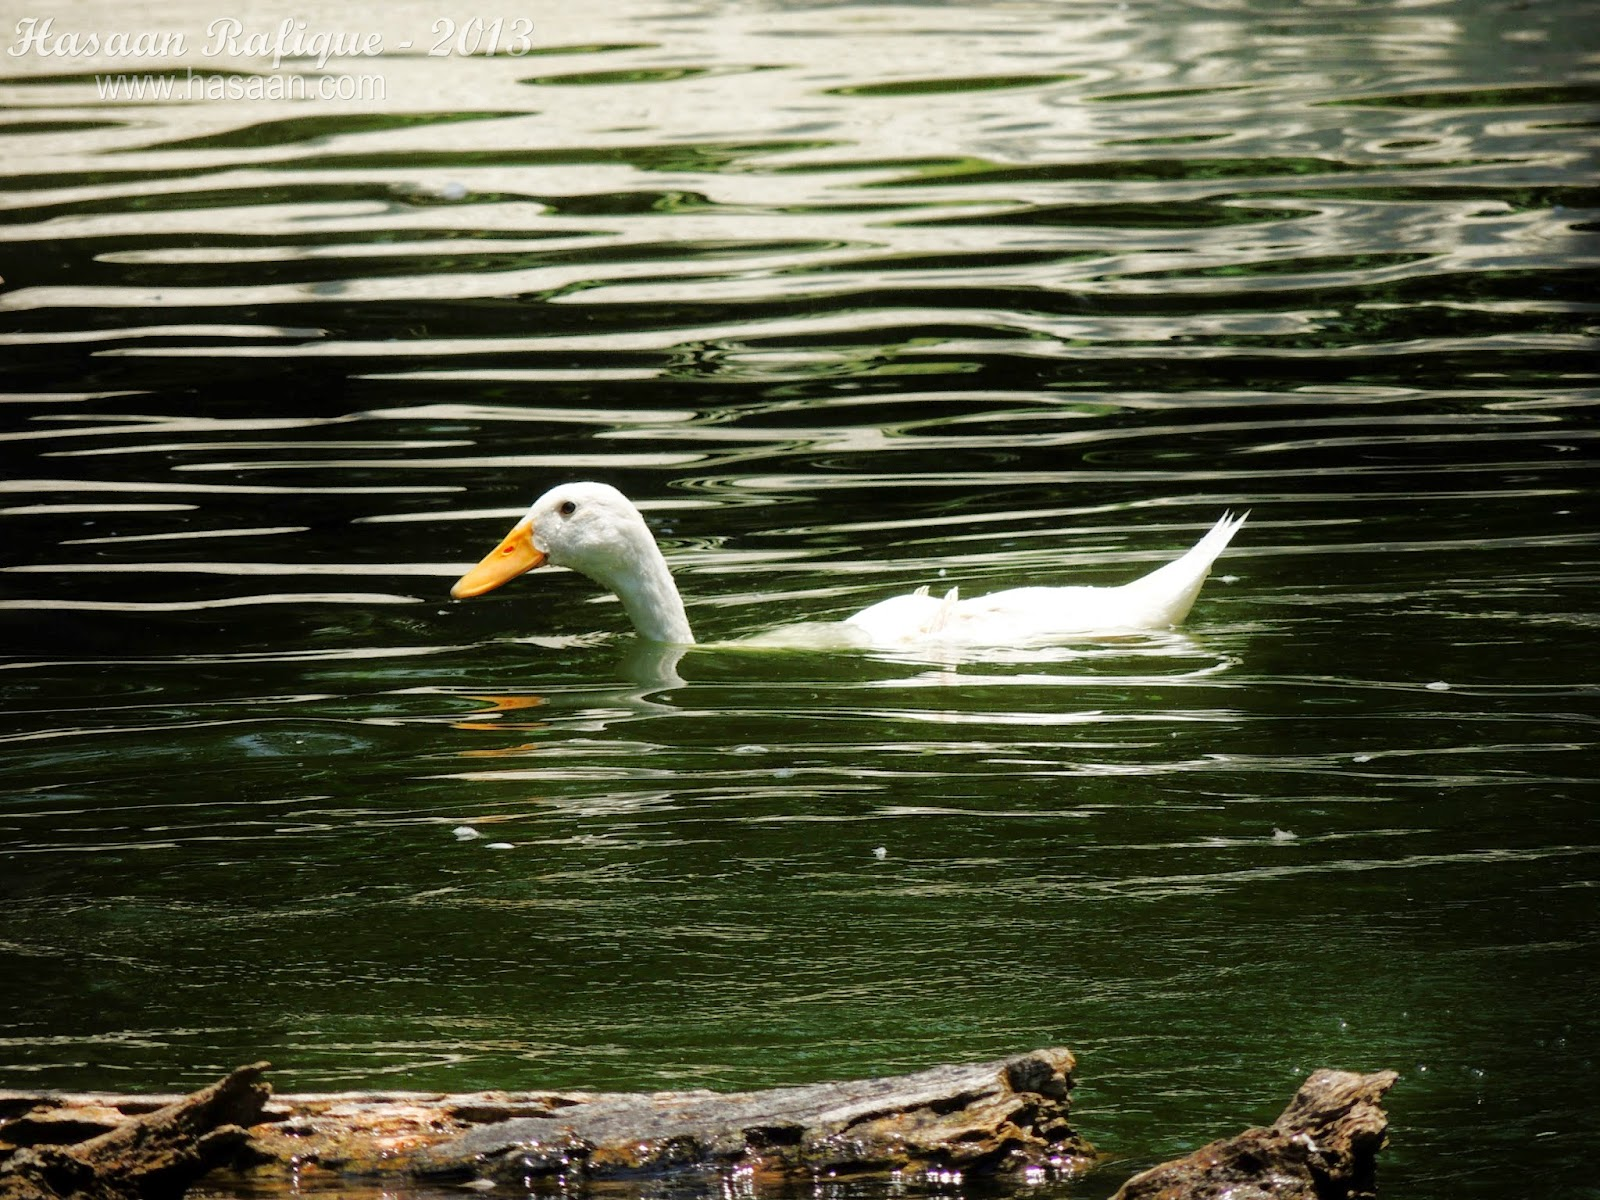 A duck swimming half-submerged in the water.